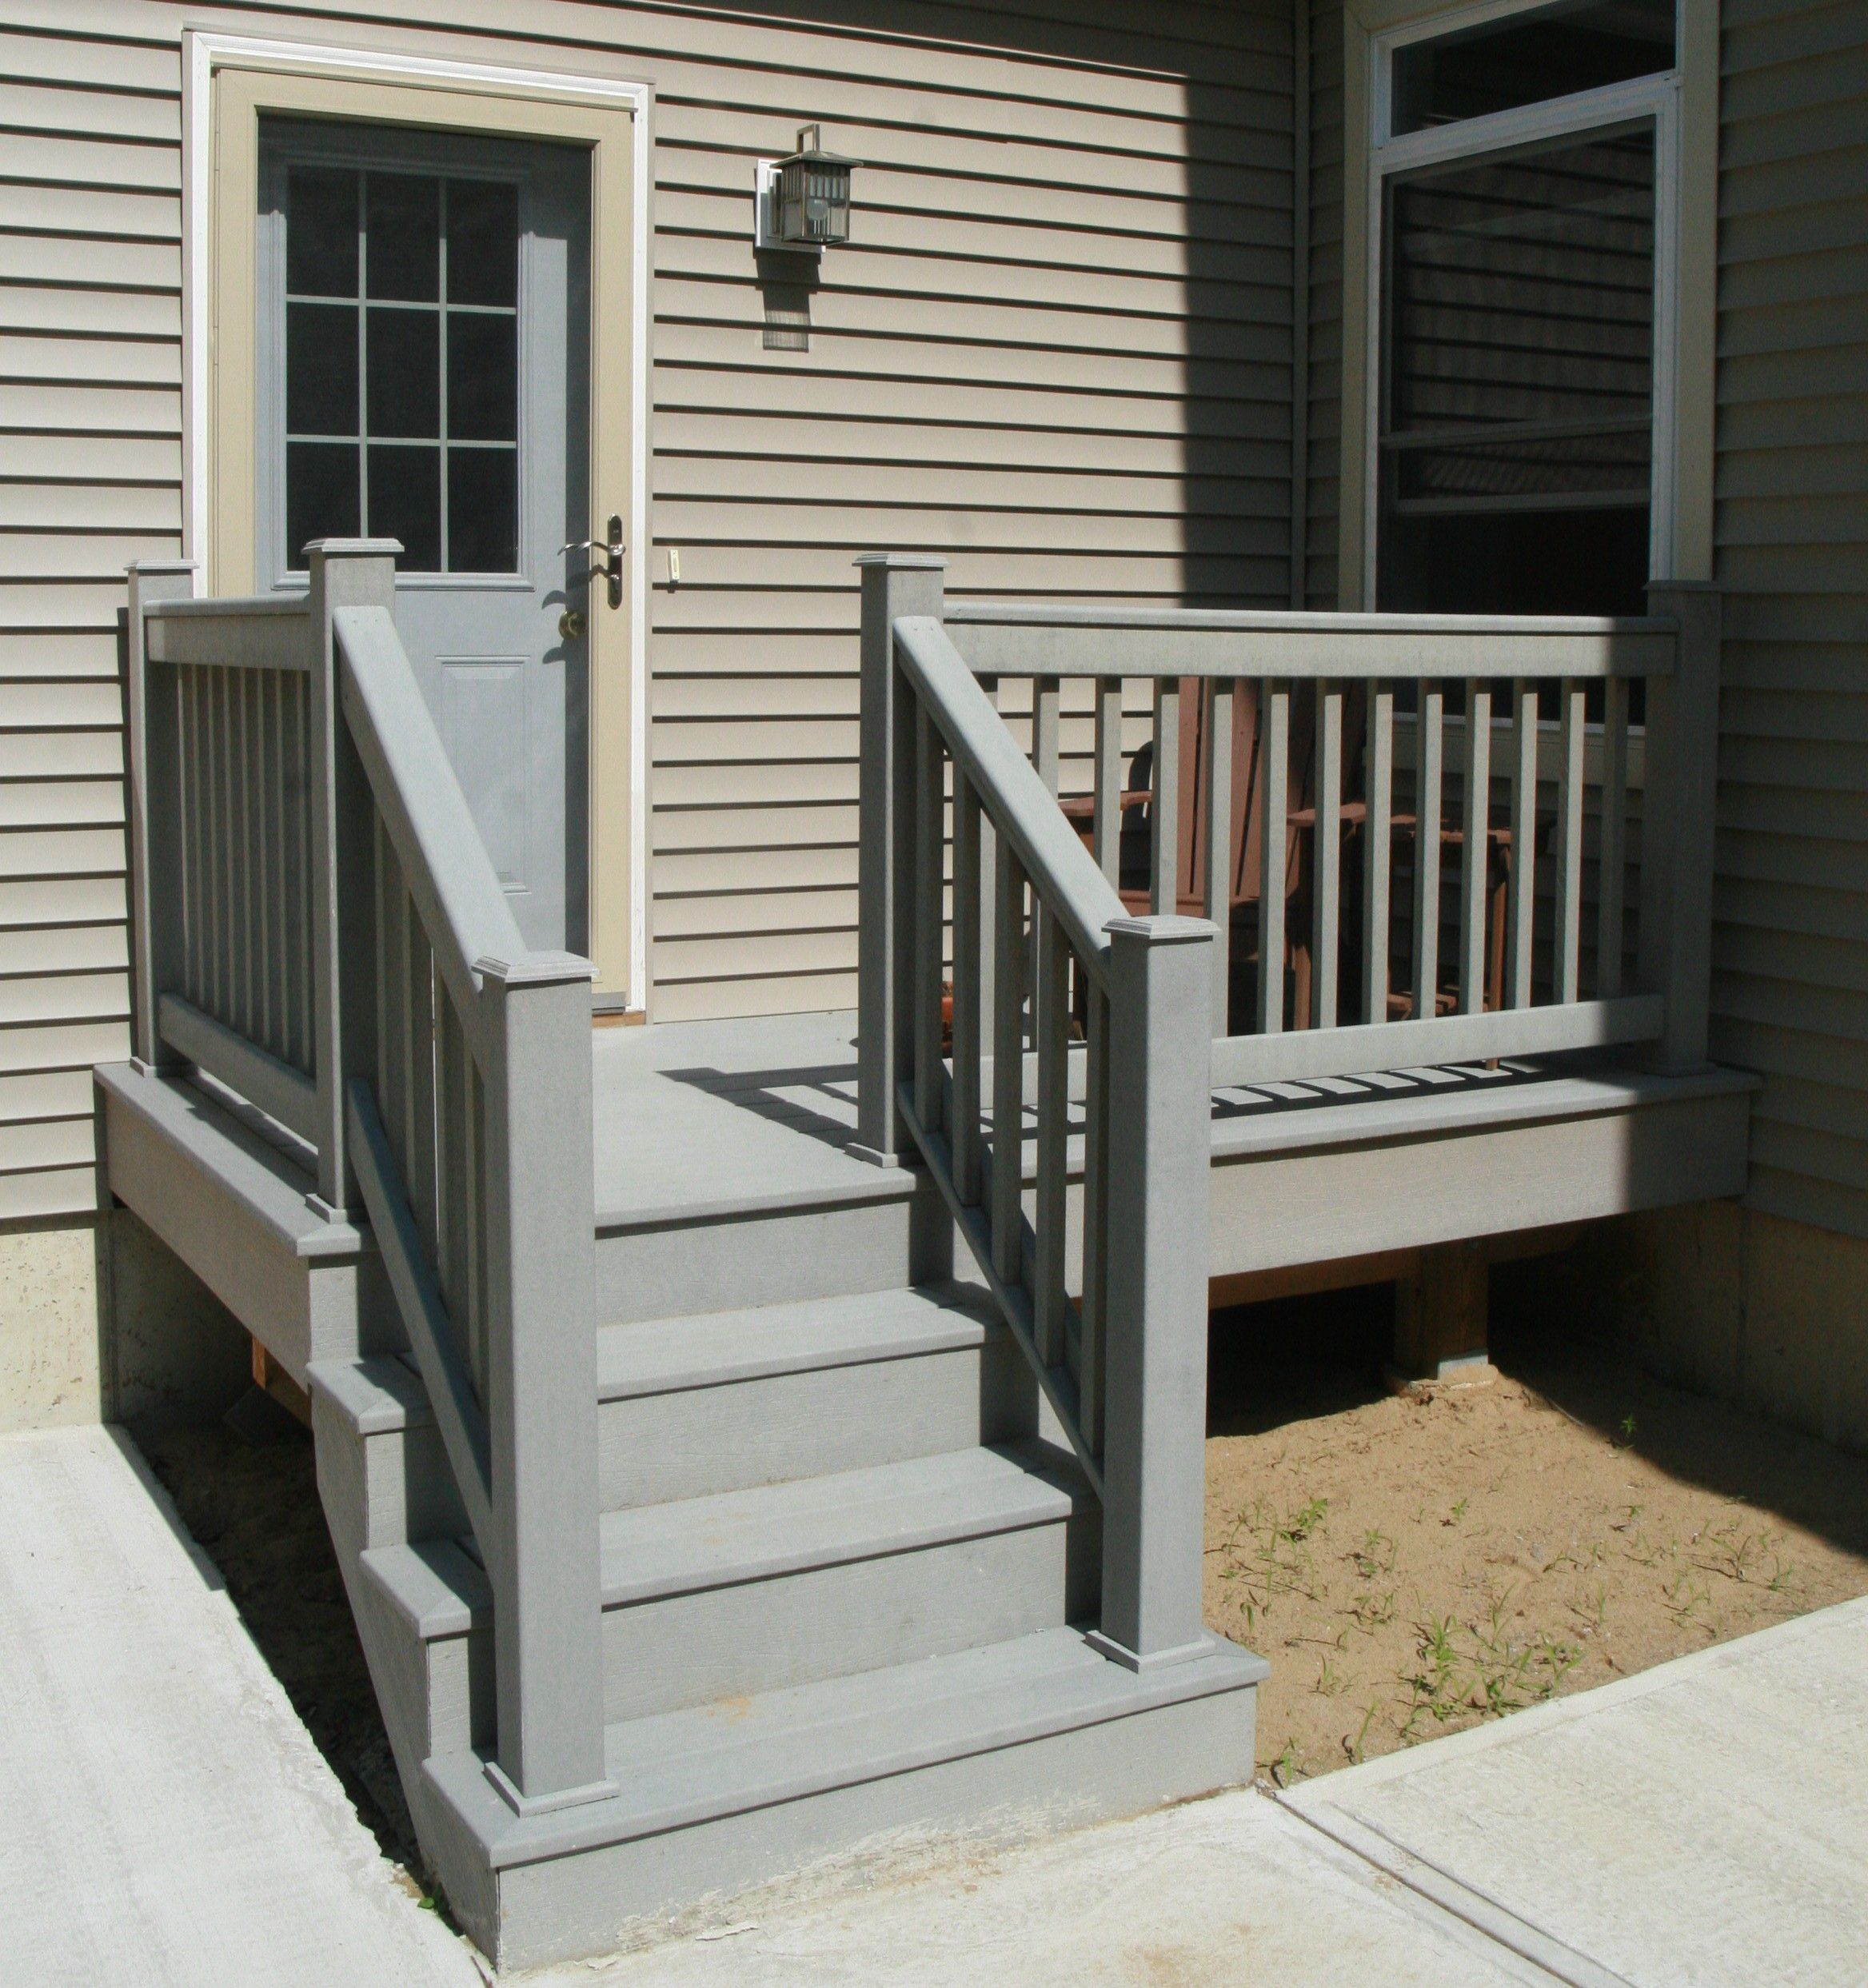 Stair Design Budget And Important Things To Consider: Composite Decking, Simple Stairs In 2019